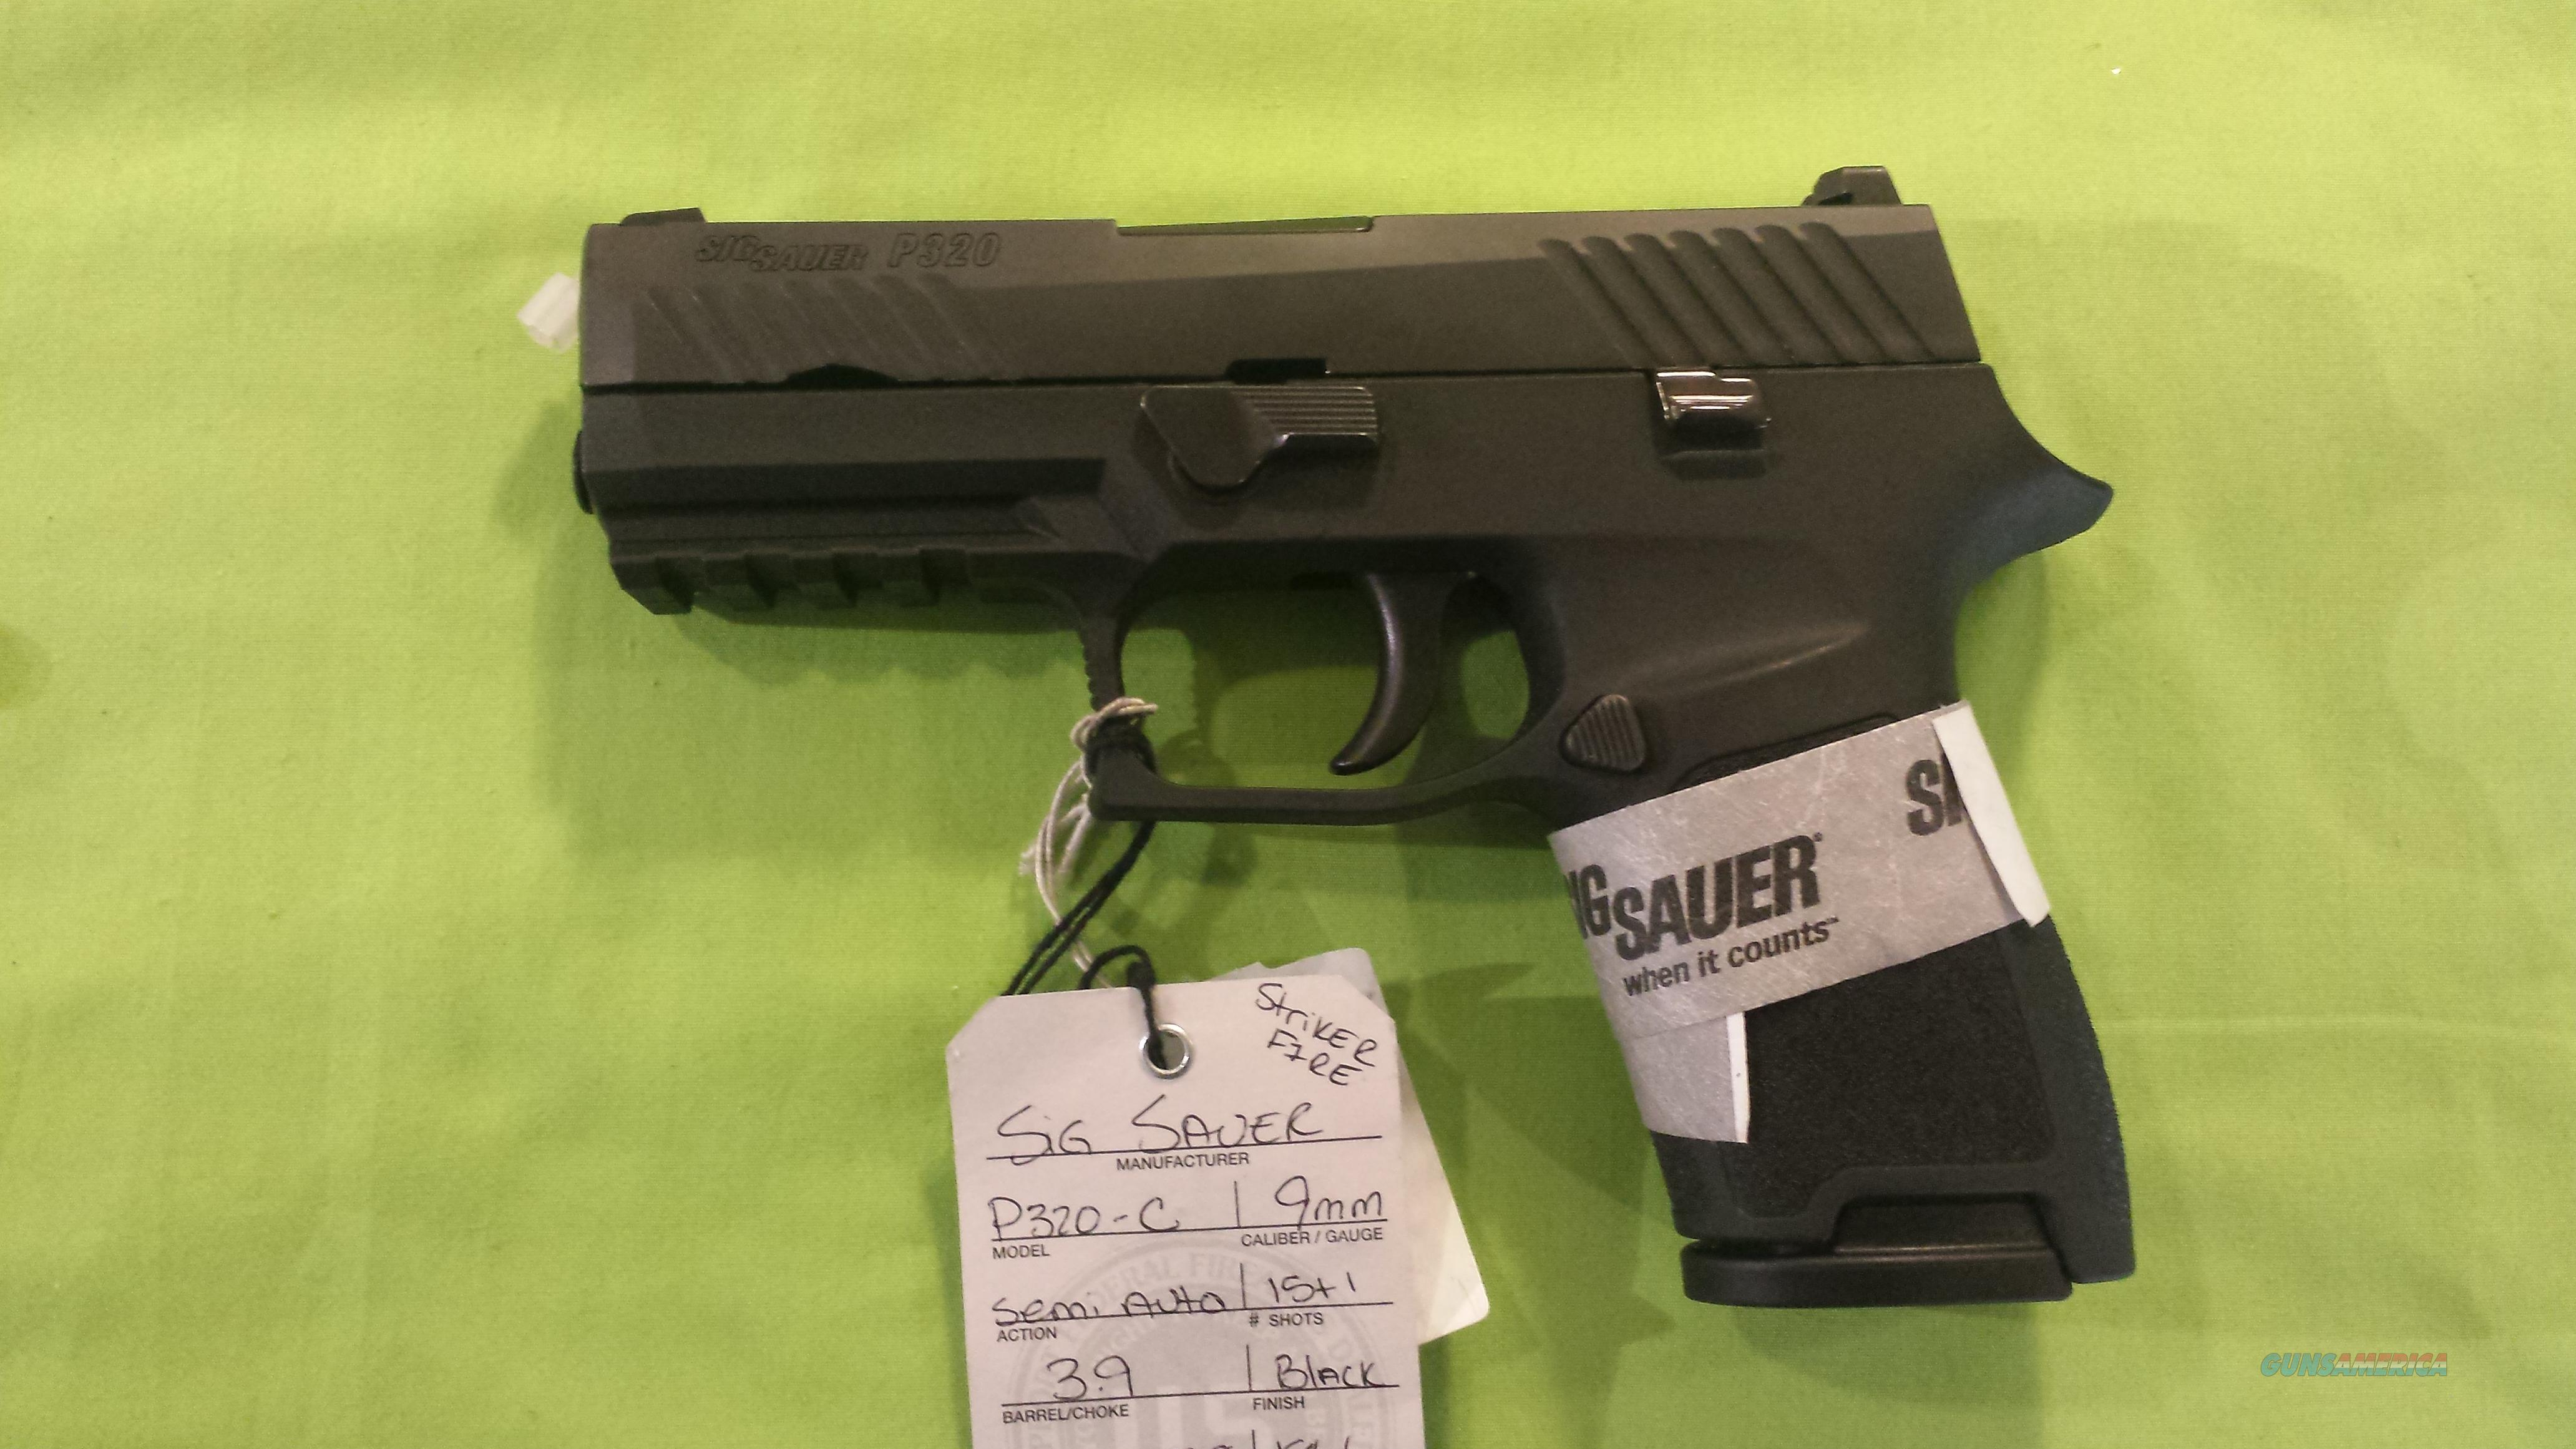 SIG SAUER P320 C COMPACT FS 9MM 3.9 15RD STRIKER FIRE  Guns > Pistols > Sig - Sauer/Sigarms Pistols > Other